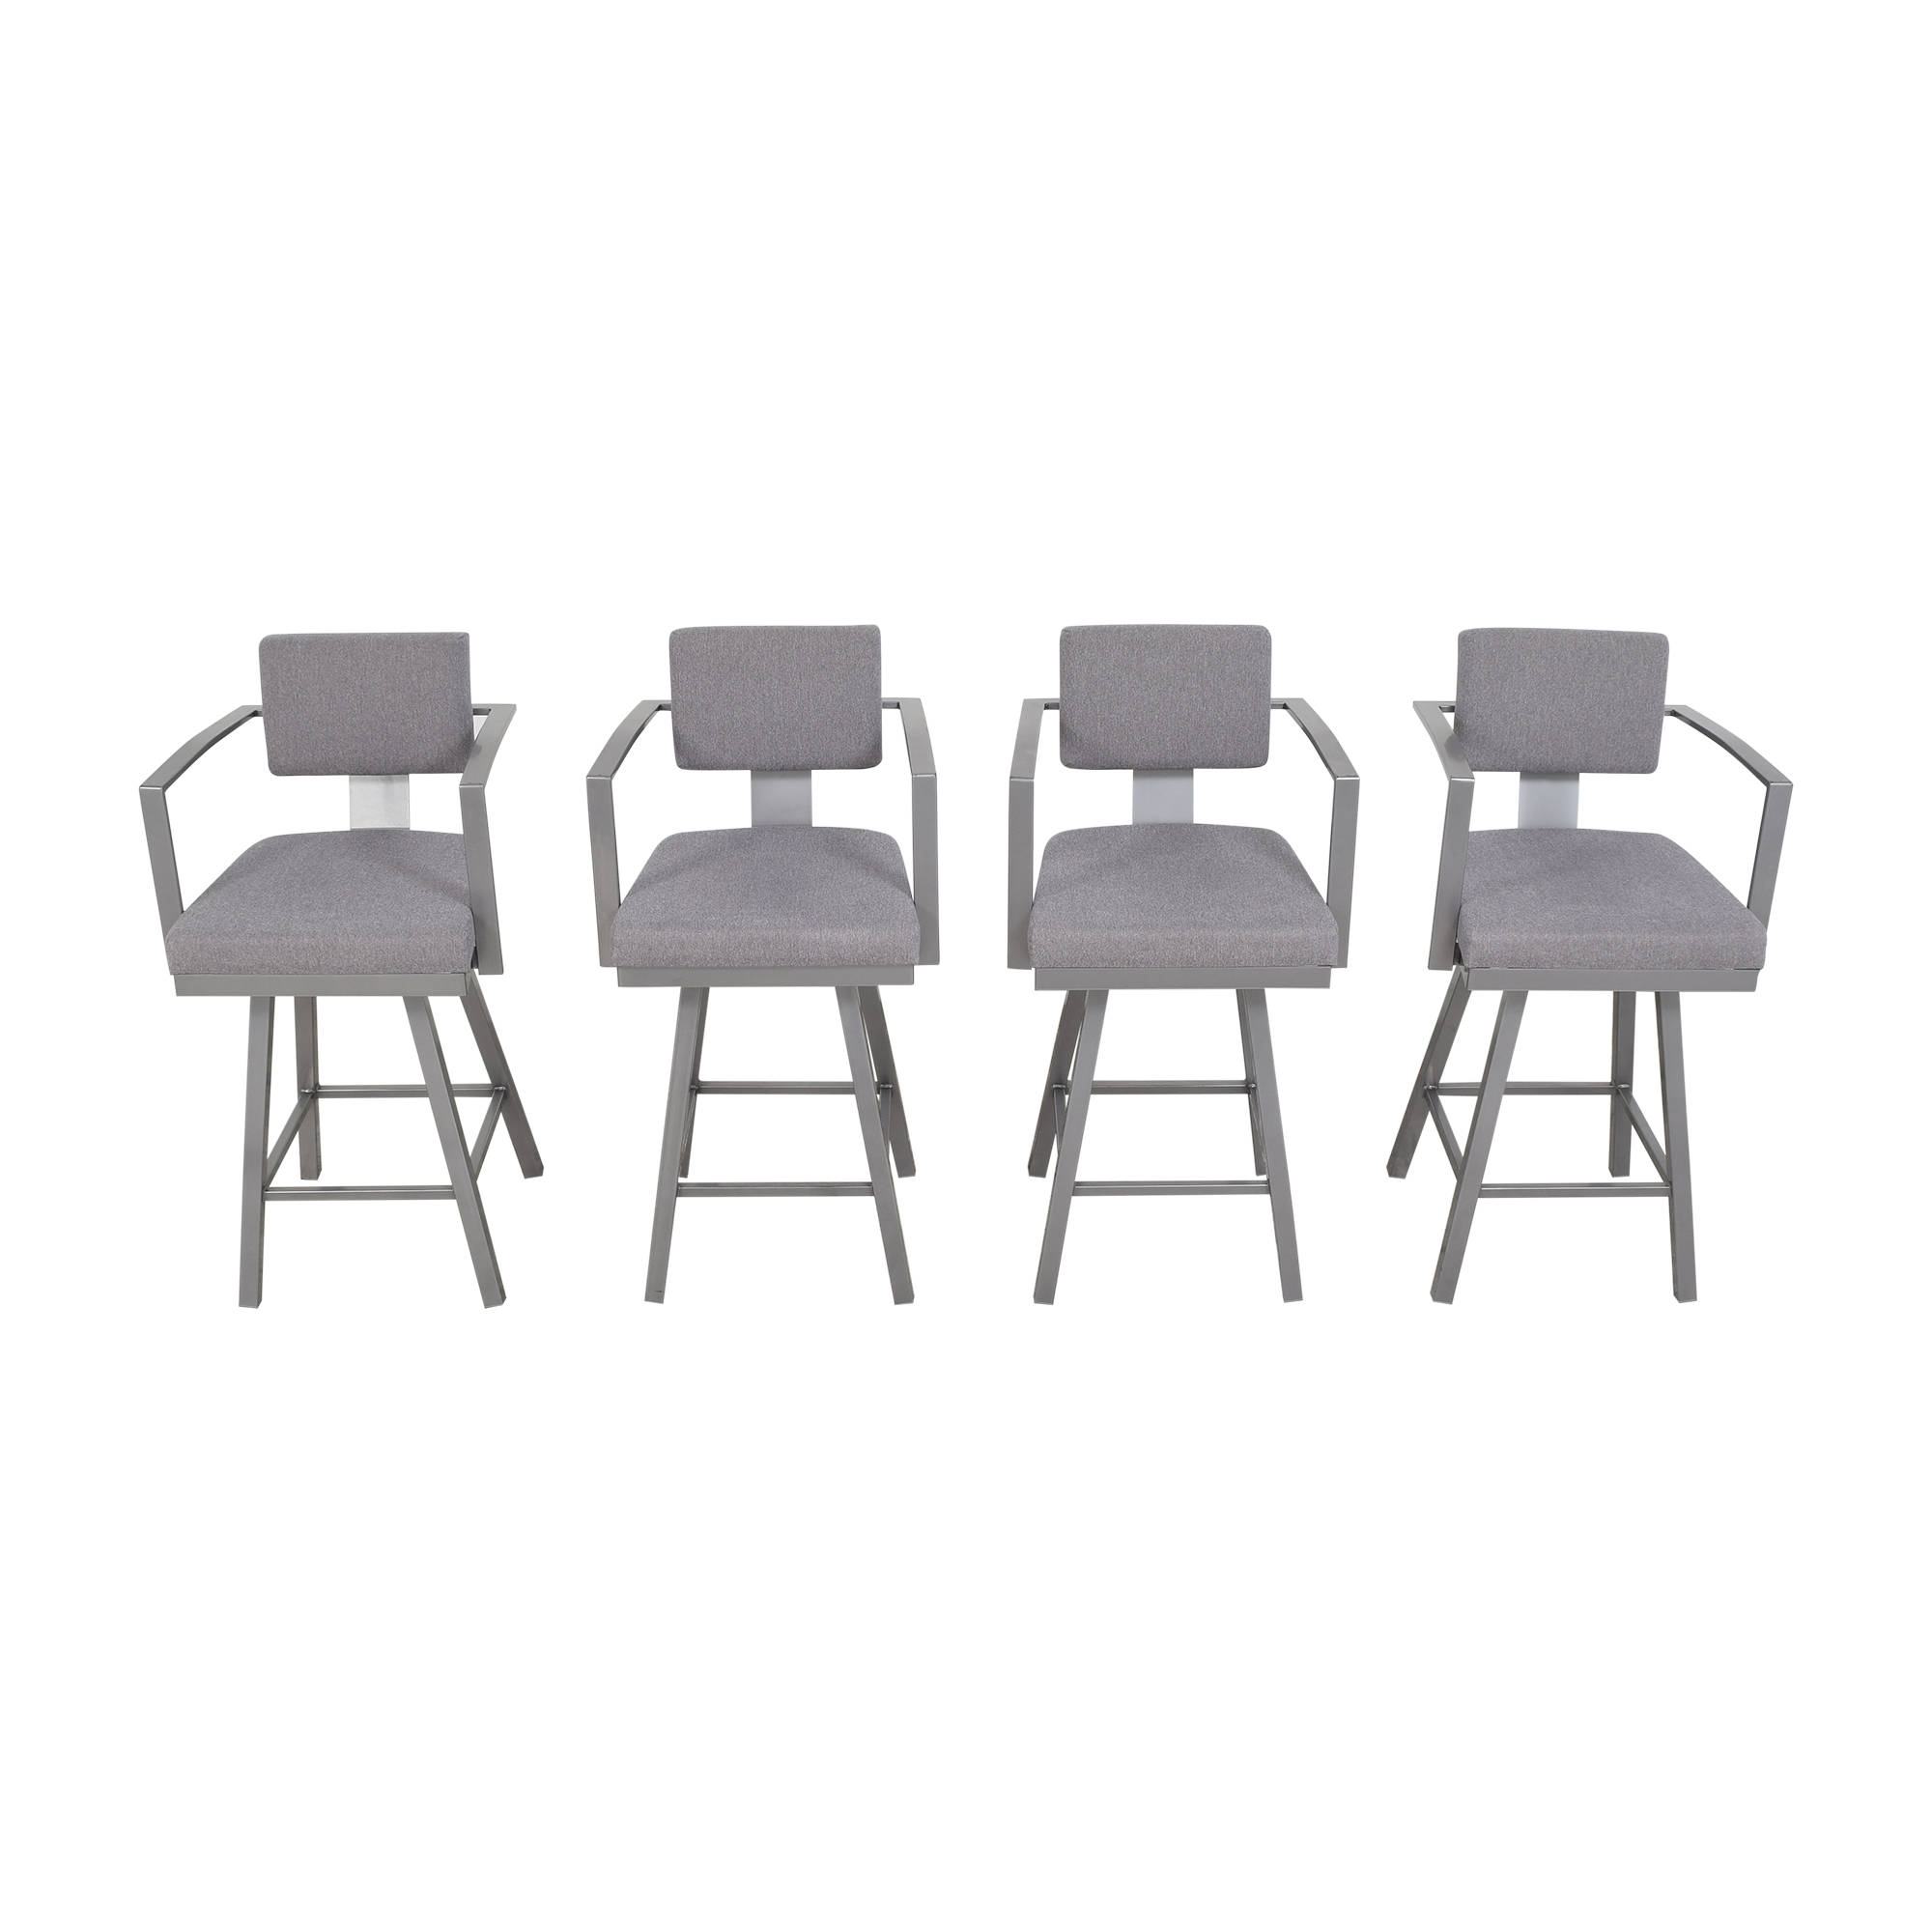 Amisco Akers Counter Stools / Chairs